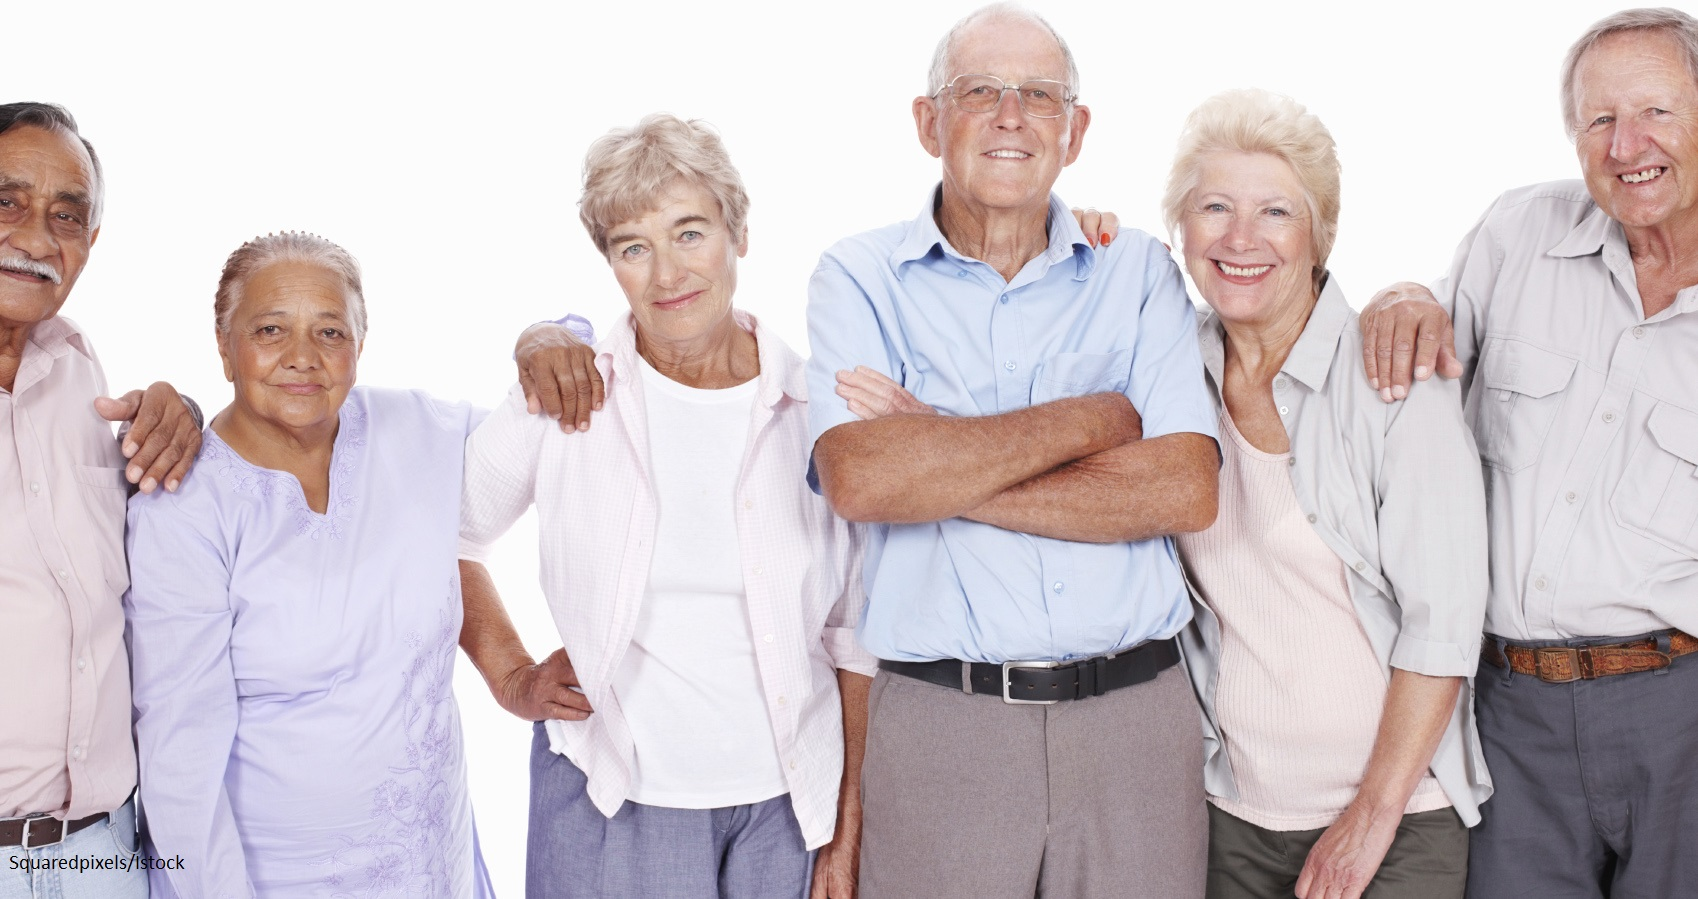 Portrait of smiling seniors standing together over white background